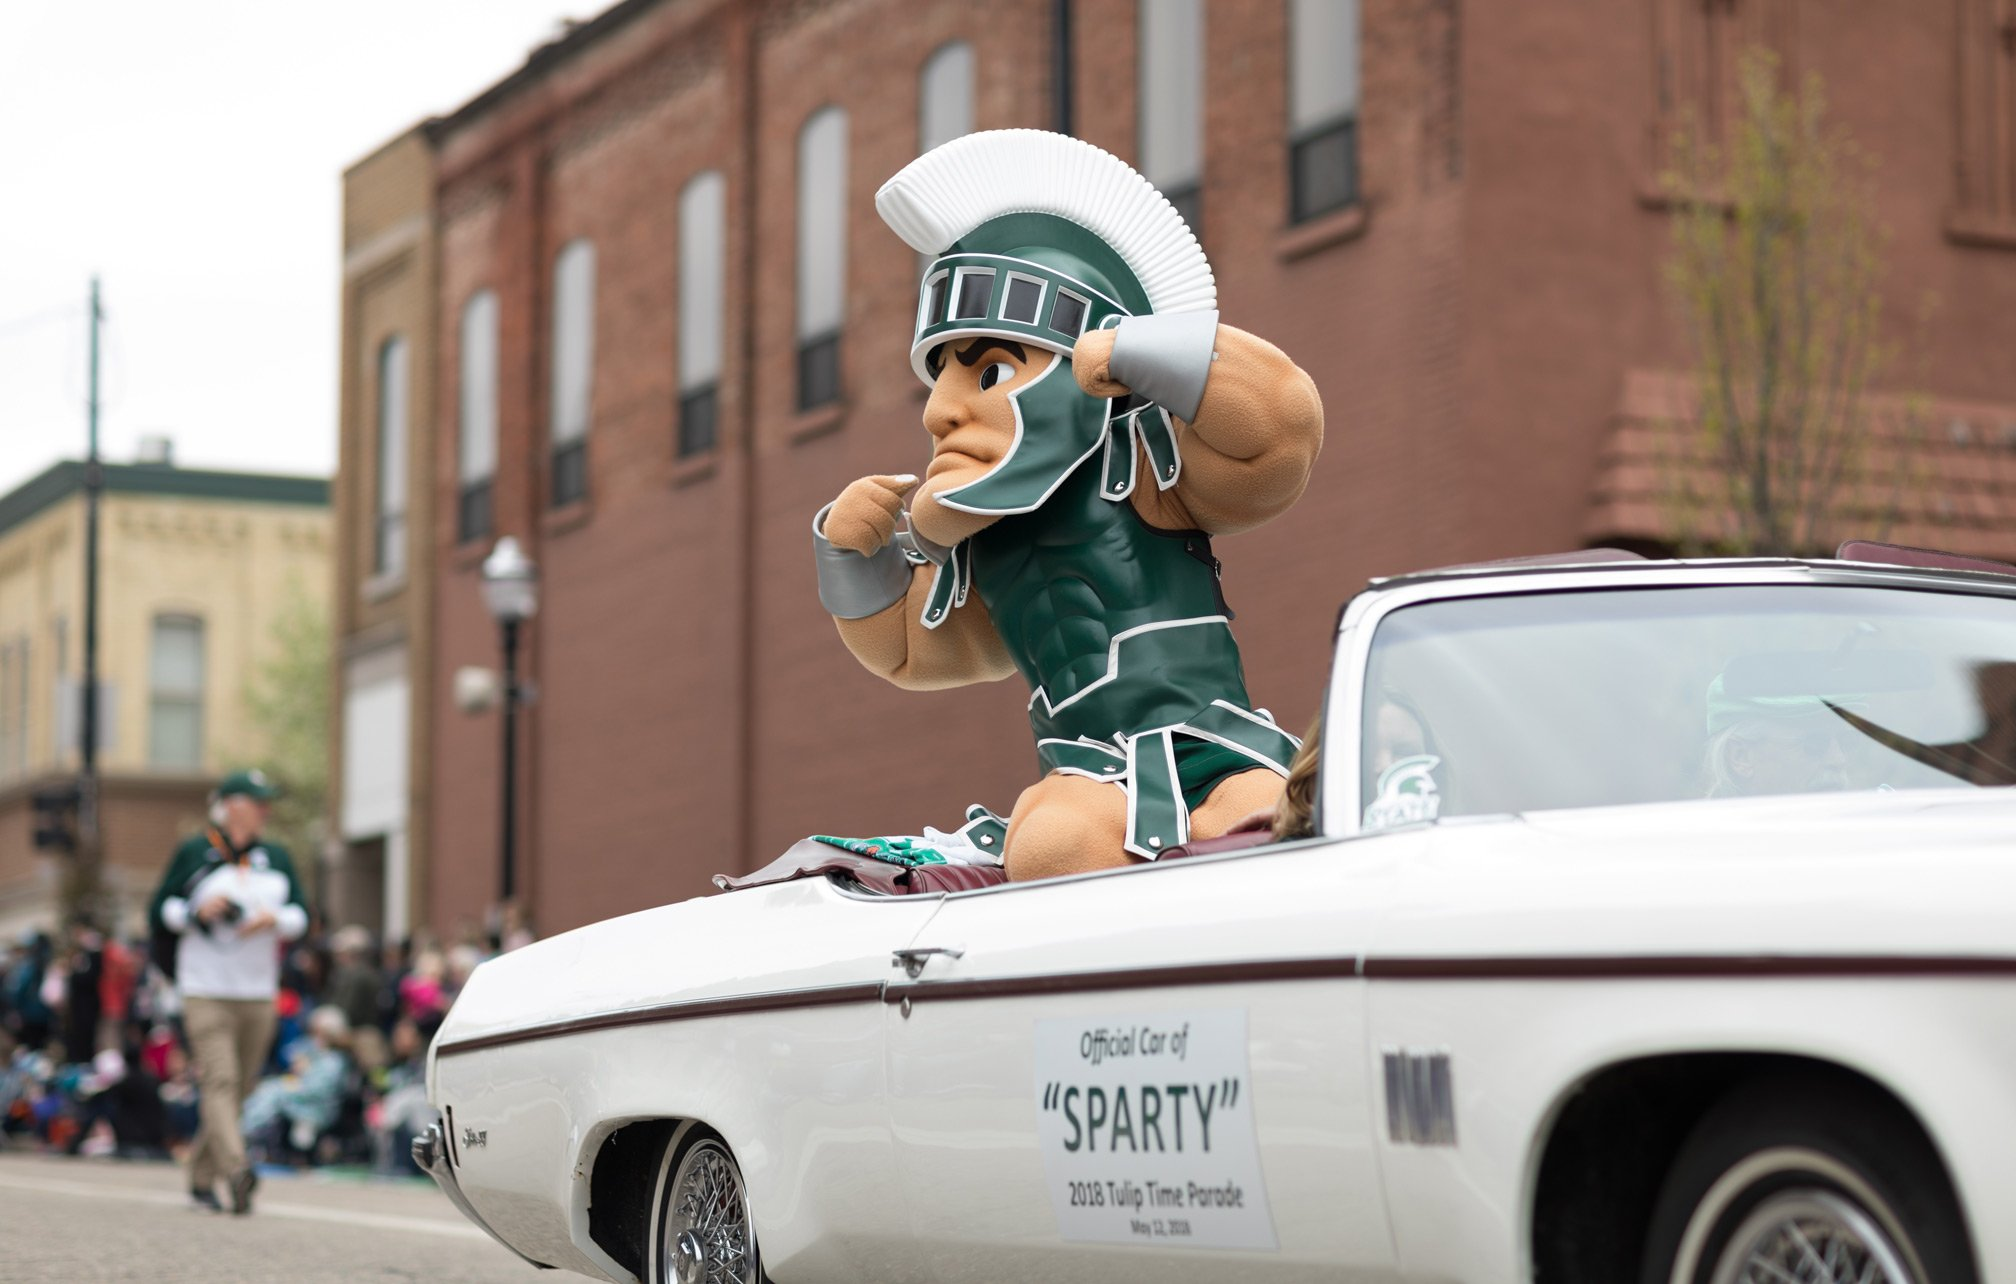 sport mascot in car for retail and consumer applications